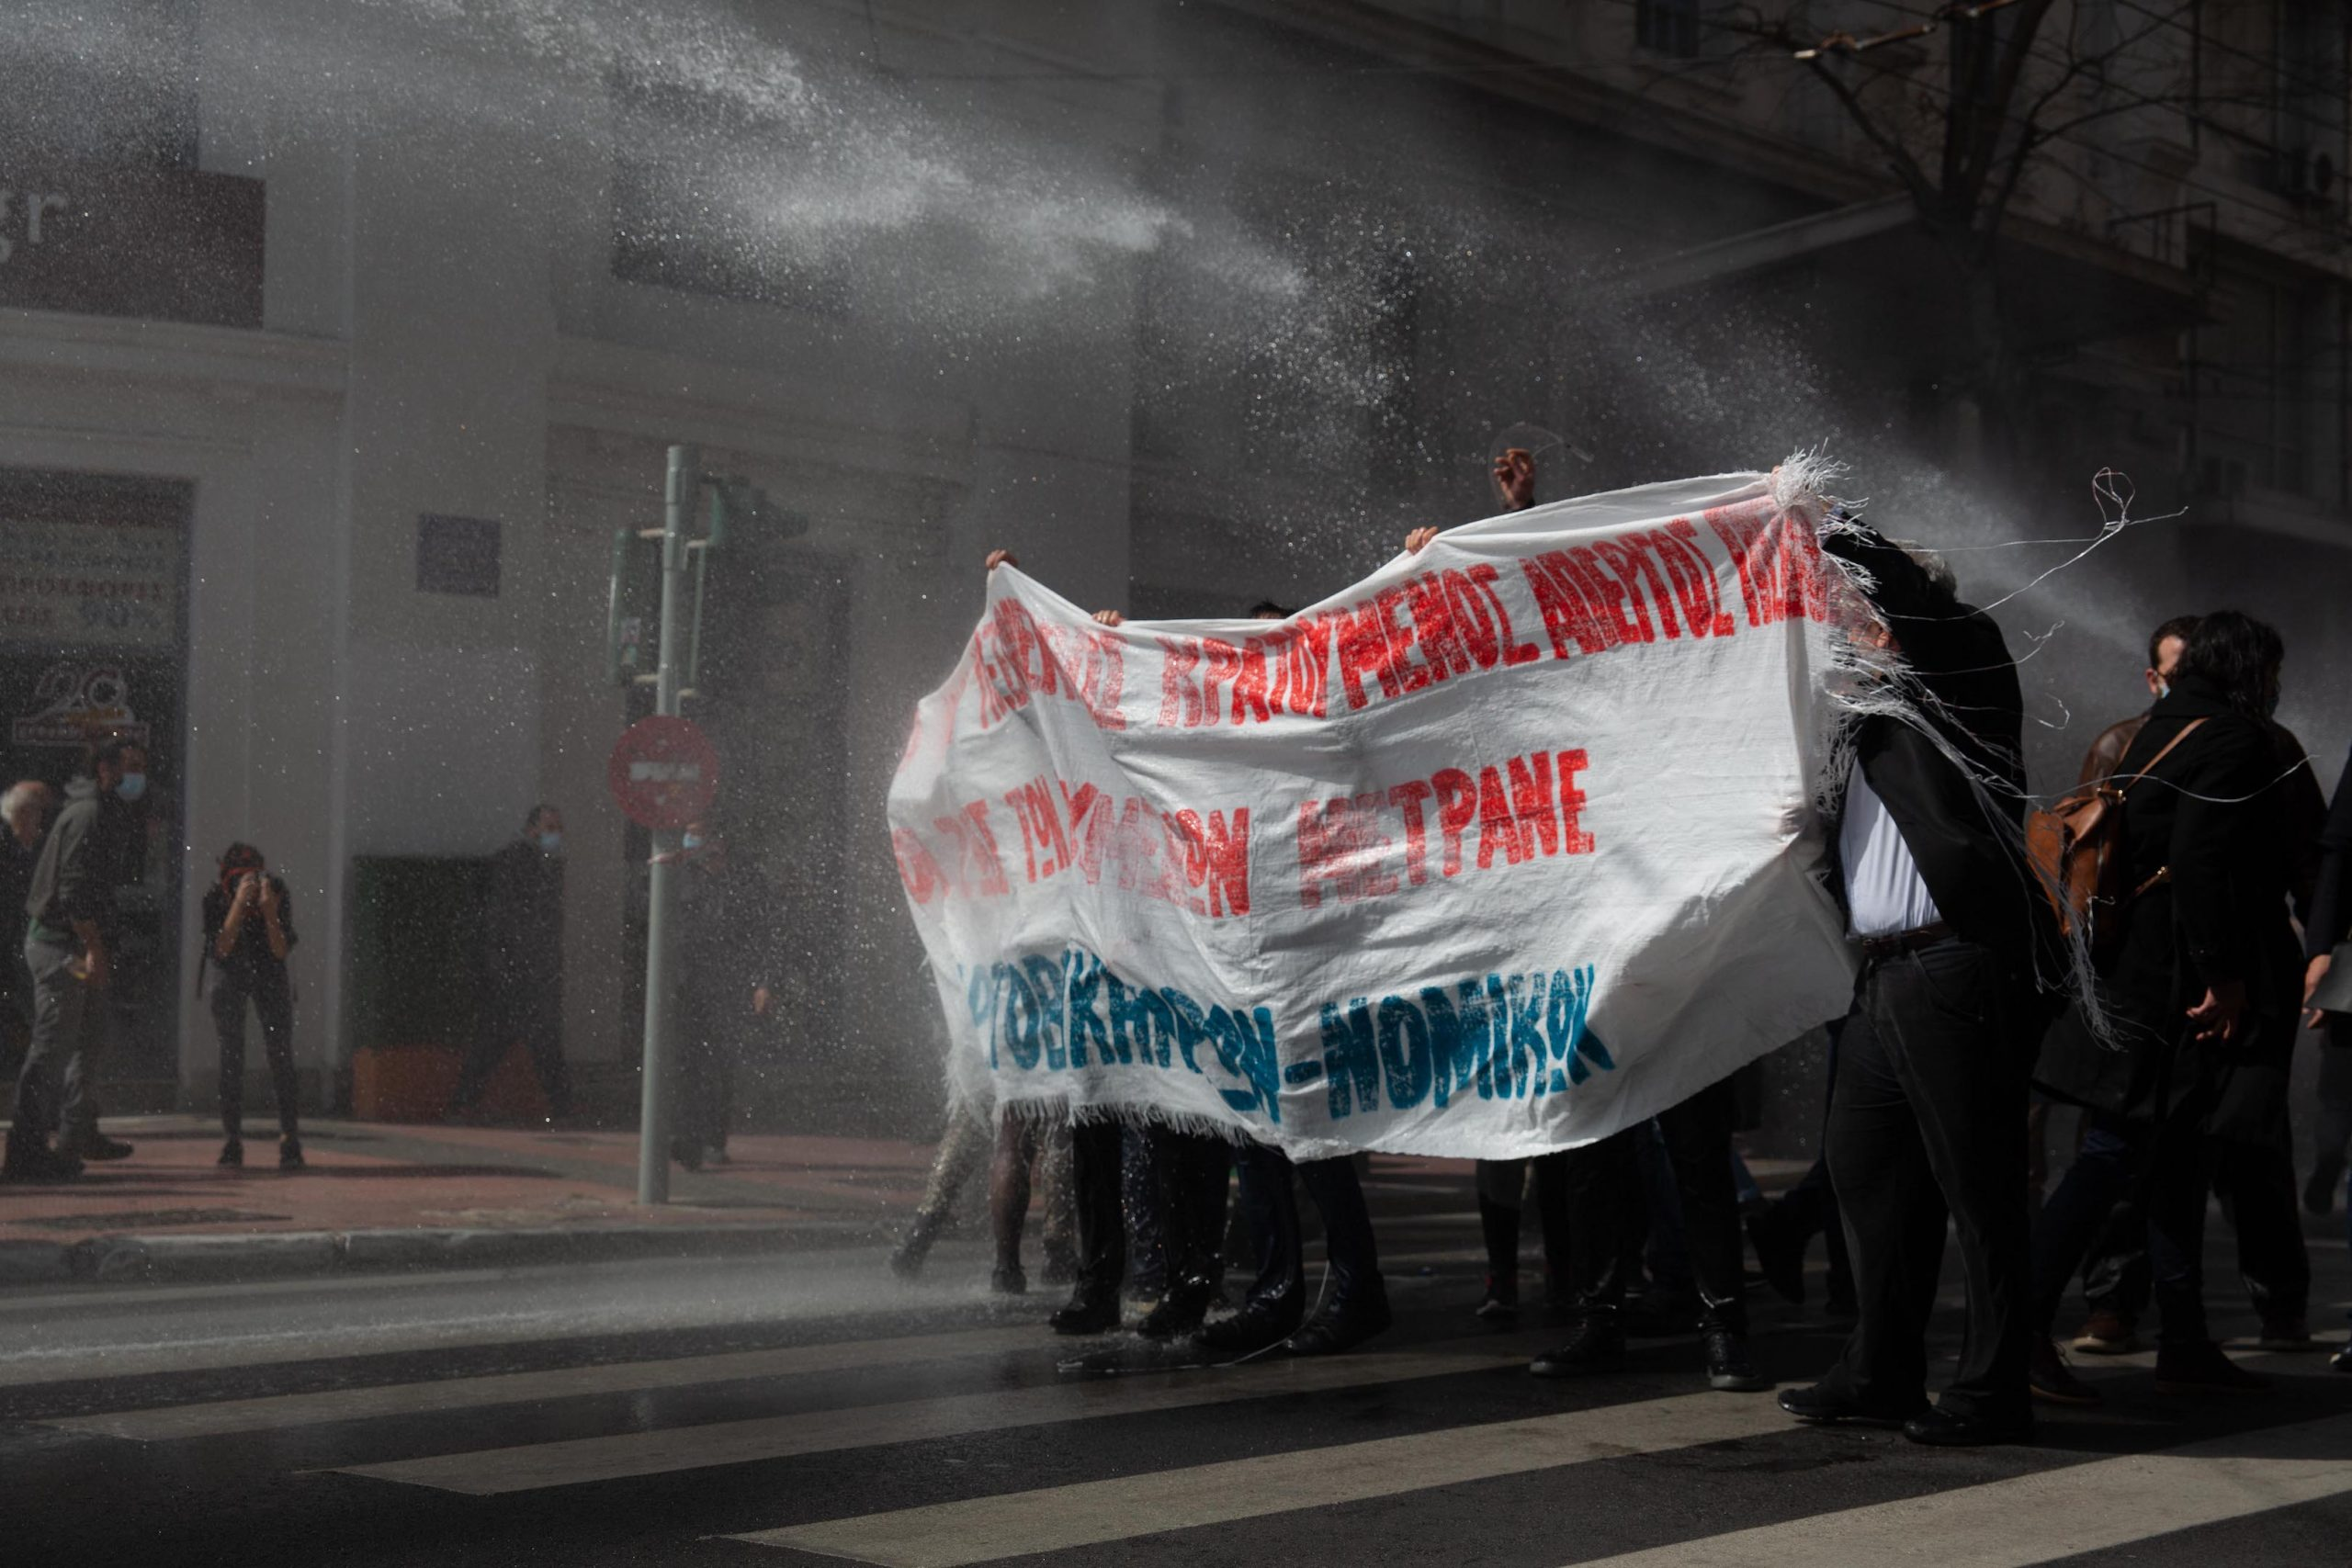 Athens is rising up against police brutality